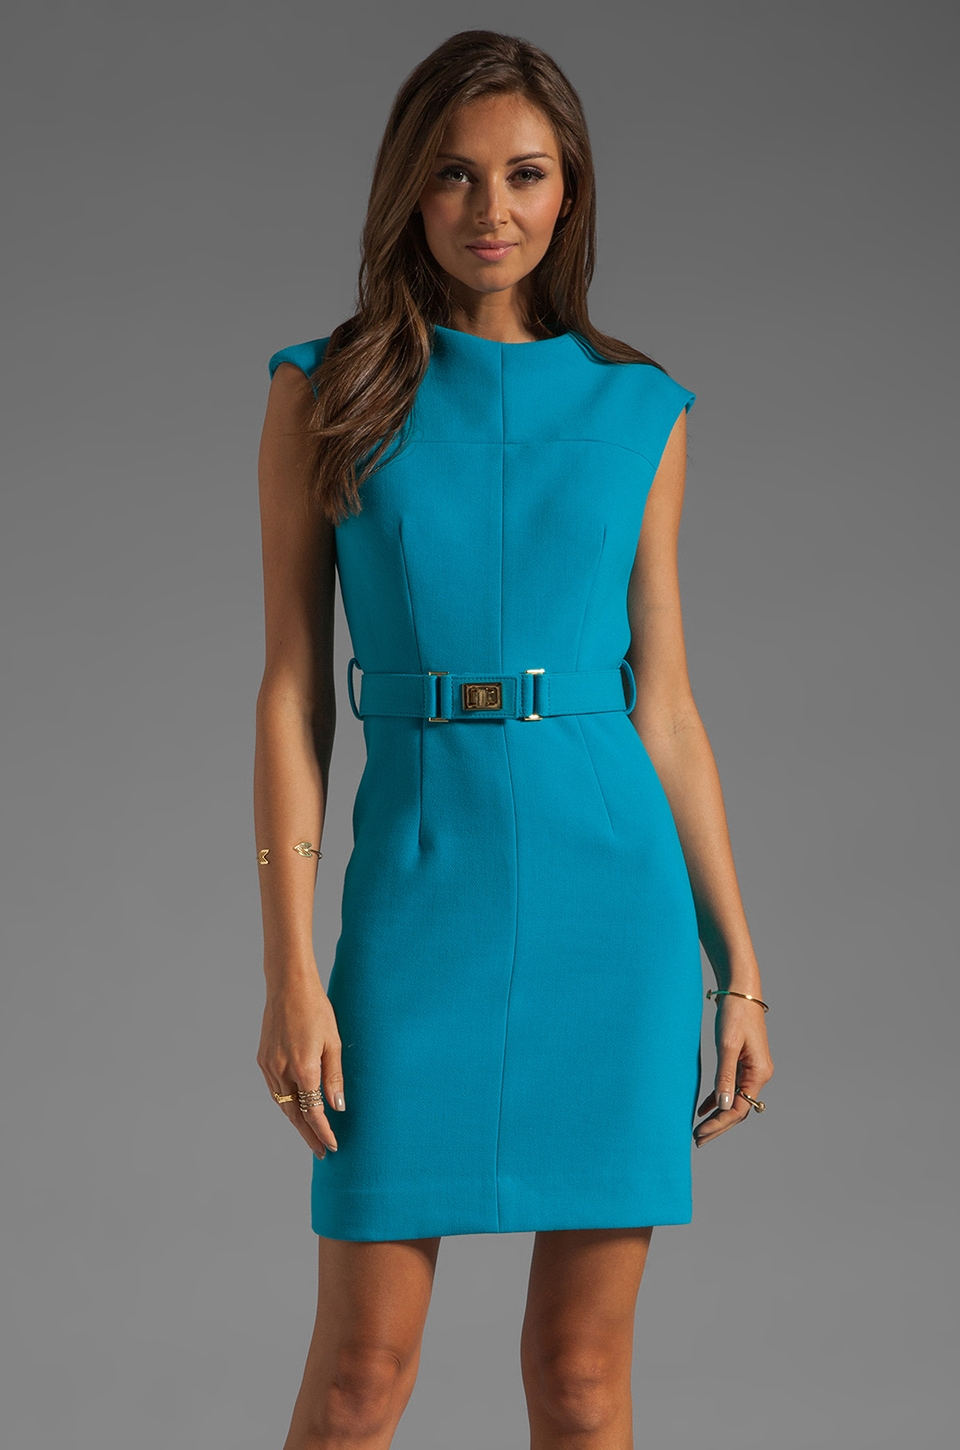 MILLY Doubleweave Crepe Daphnie Dress in Aqua